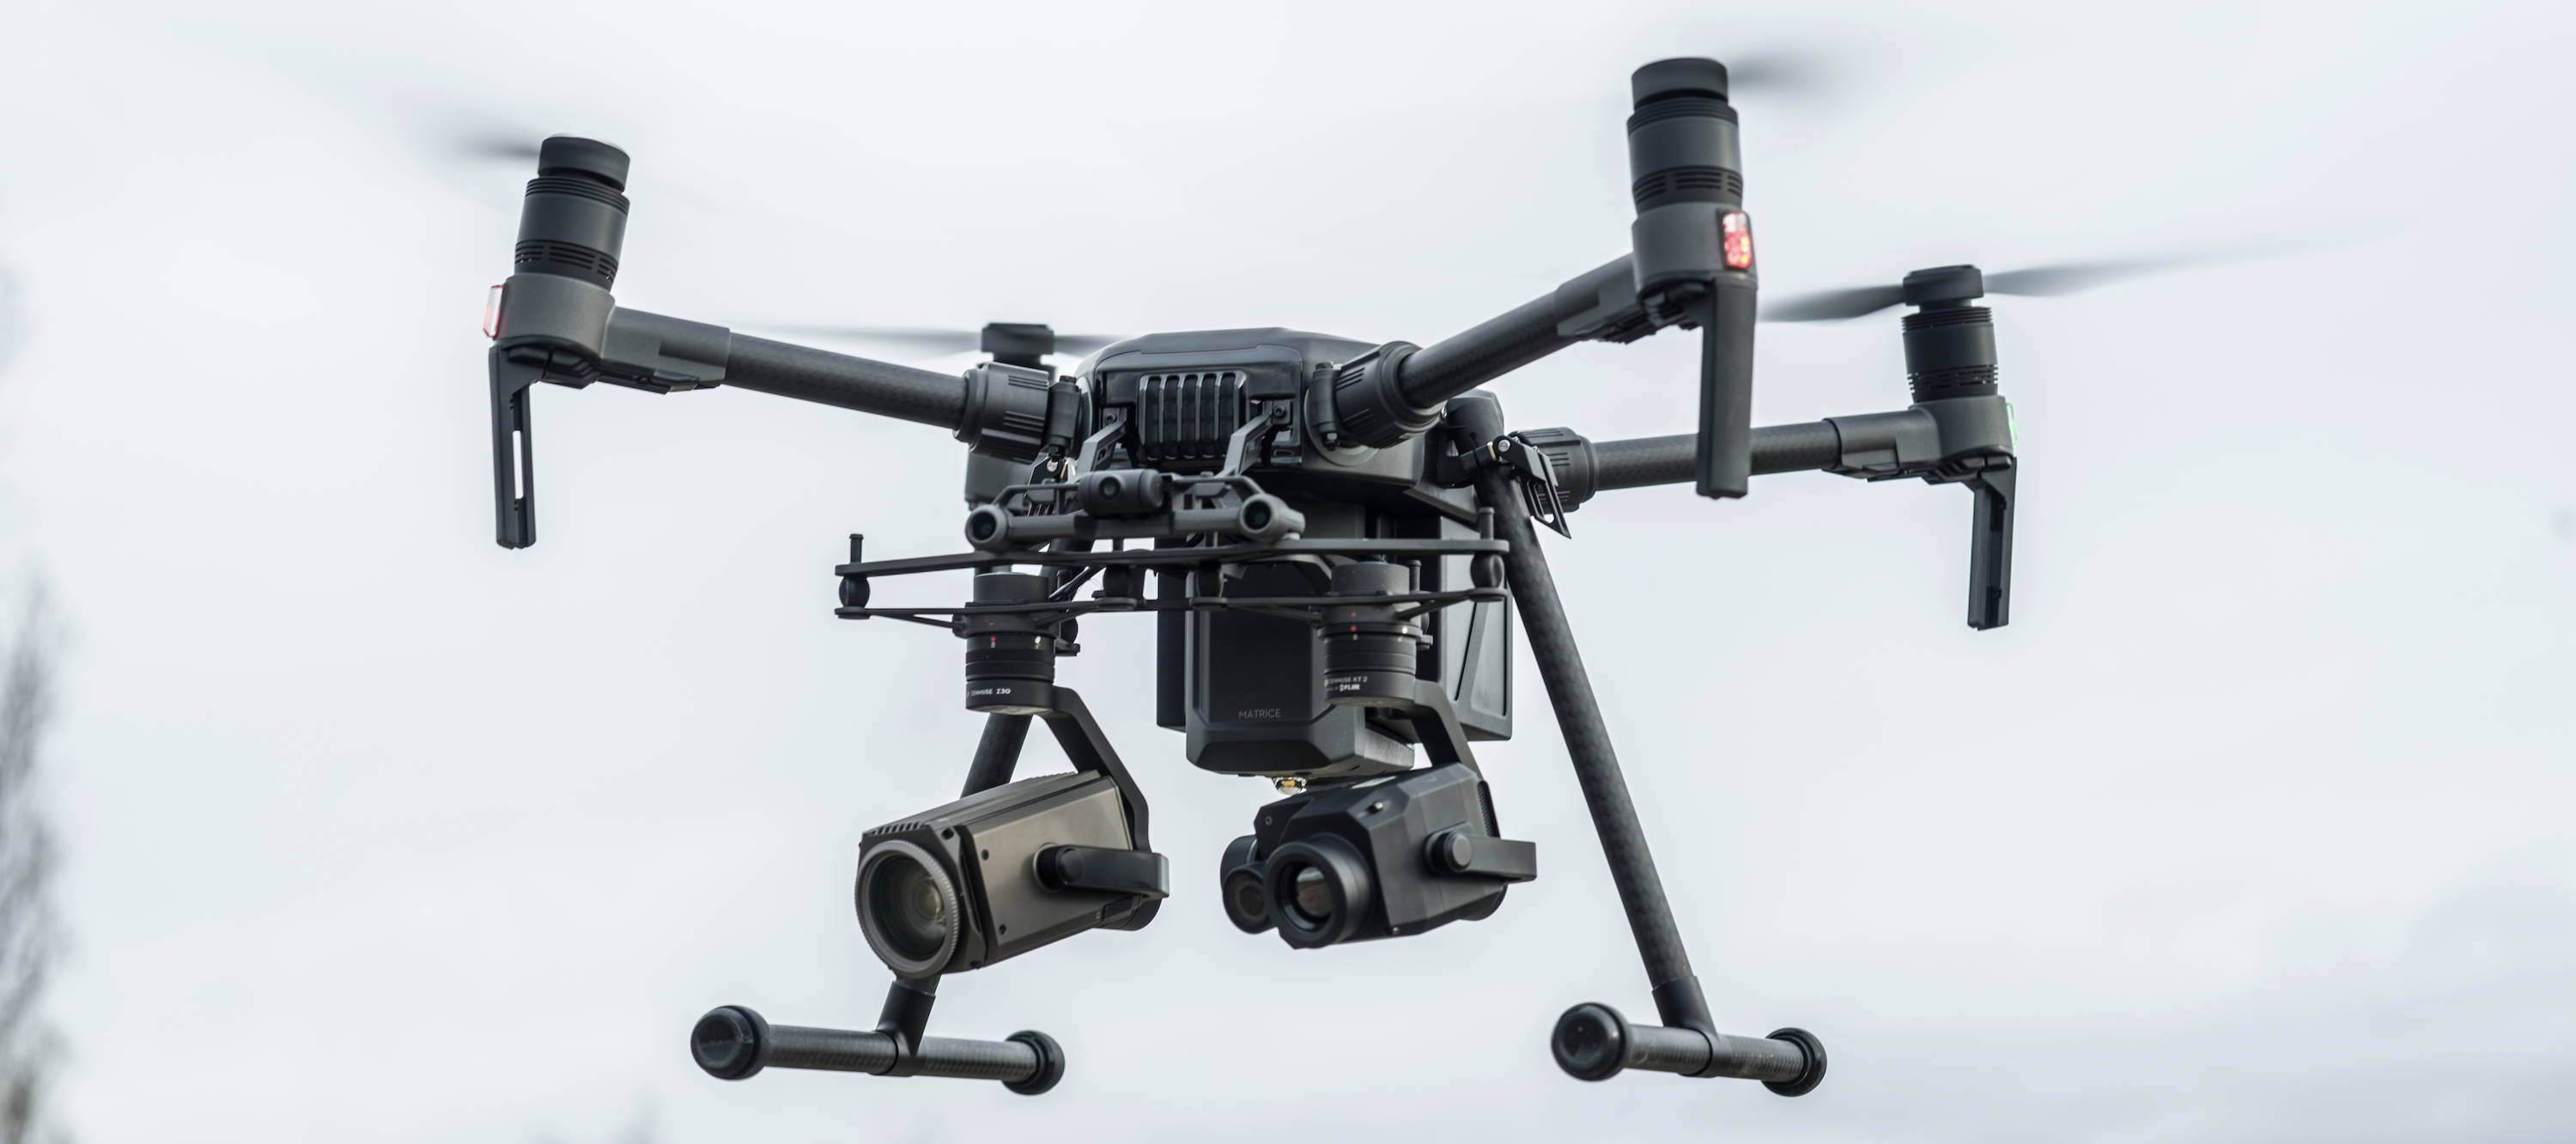 Matrice 200 Series V2 Dr Drone close up